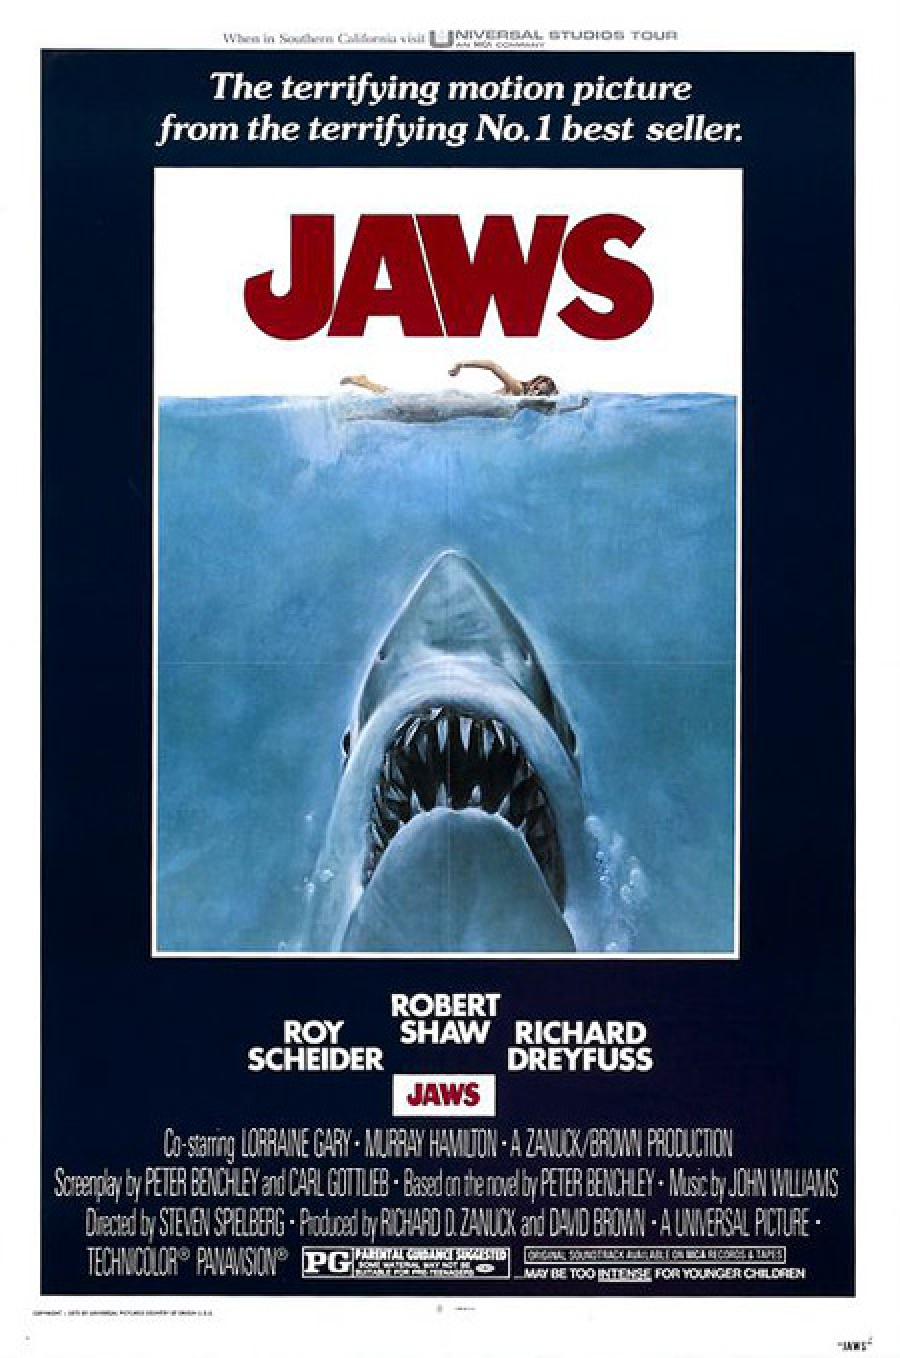 """The Game Changer: Celebrating """"Jaws"""" on its 40th Anniversary"""